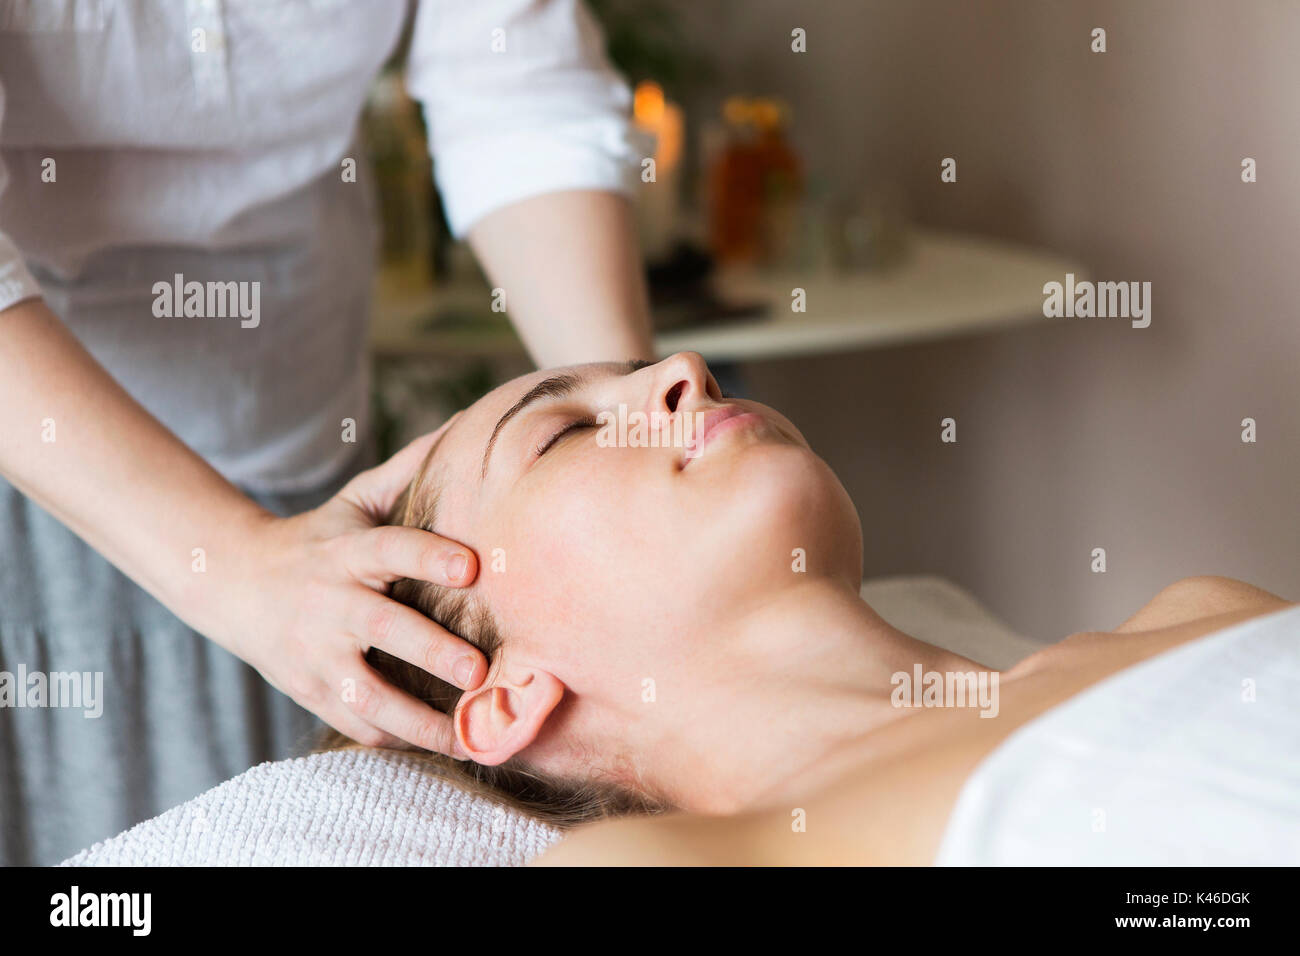 Young pretty woman face massage or beauty treatment in spa salon - Stock Image